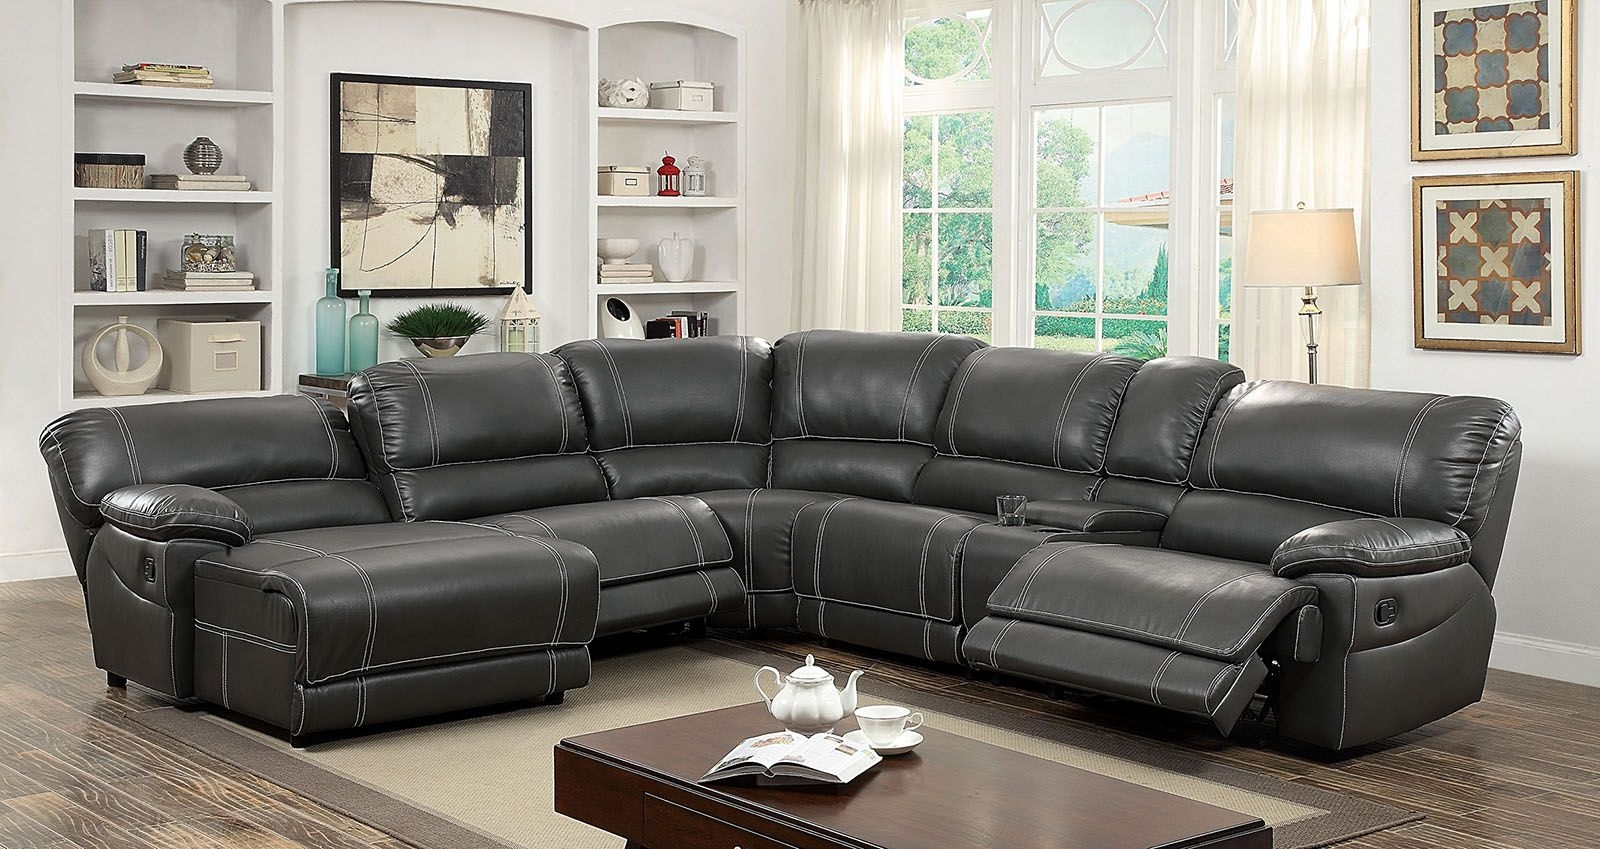 Christopher Reclining Sectional Collection Inside Denali Charcoal Grey 6 Piece Reclining Sectionals With 2 Power Headrests (Image 9 of 25)